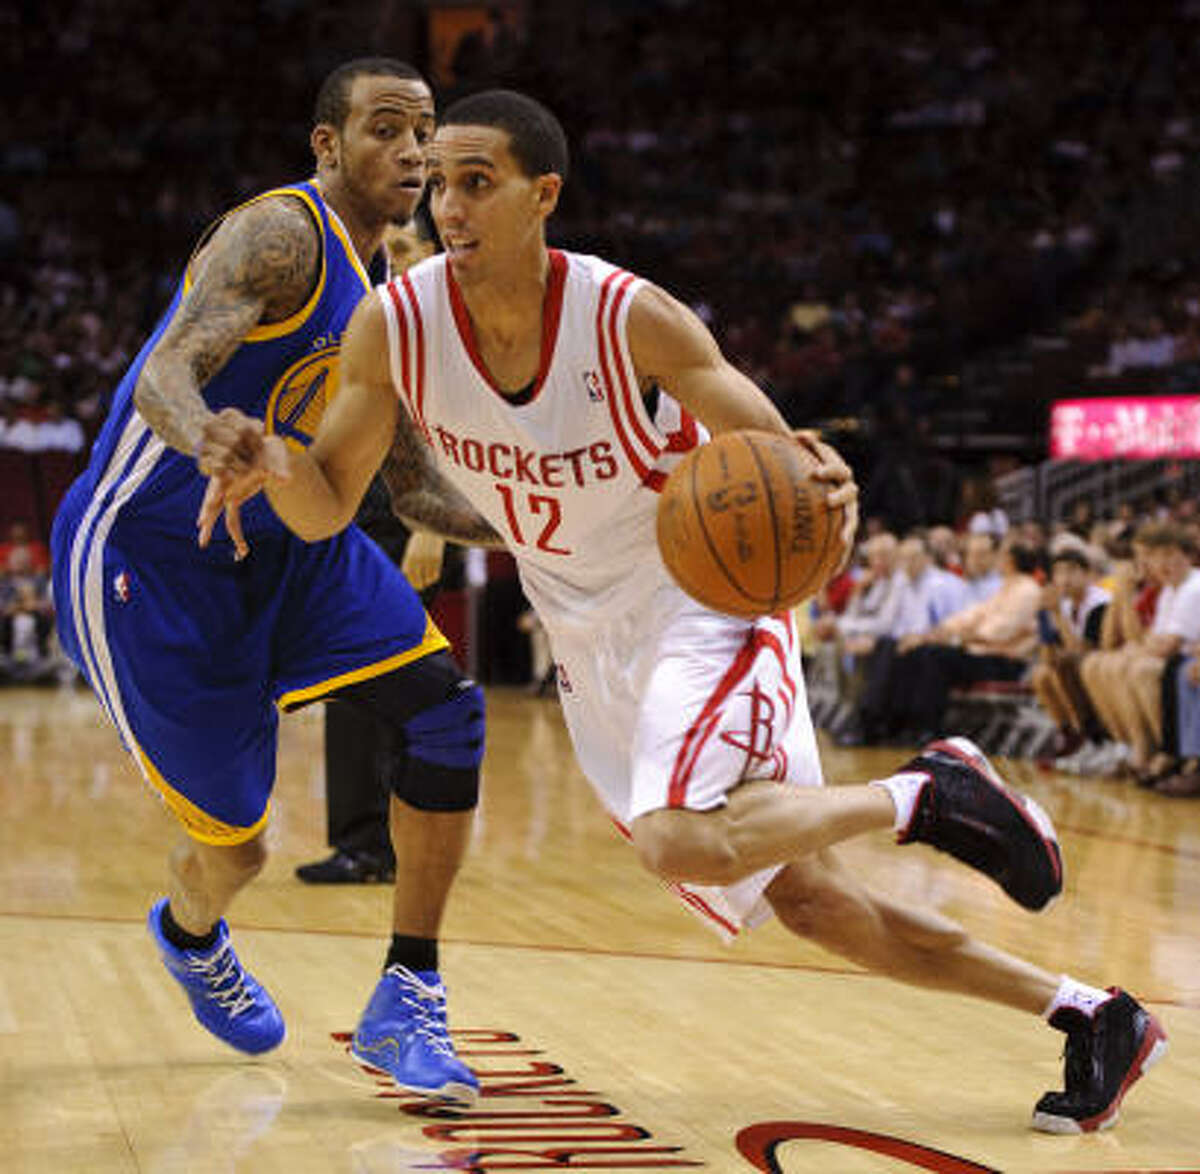 Good Kevin Martin become the first Rockets player in the top 10 of four statistical categories since Hakeem Olajuwon in 1994-95.